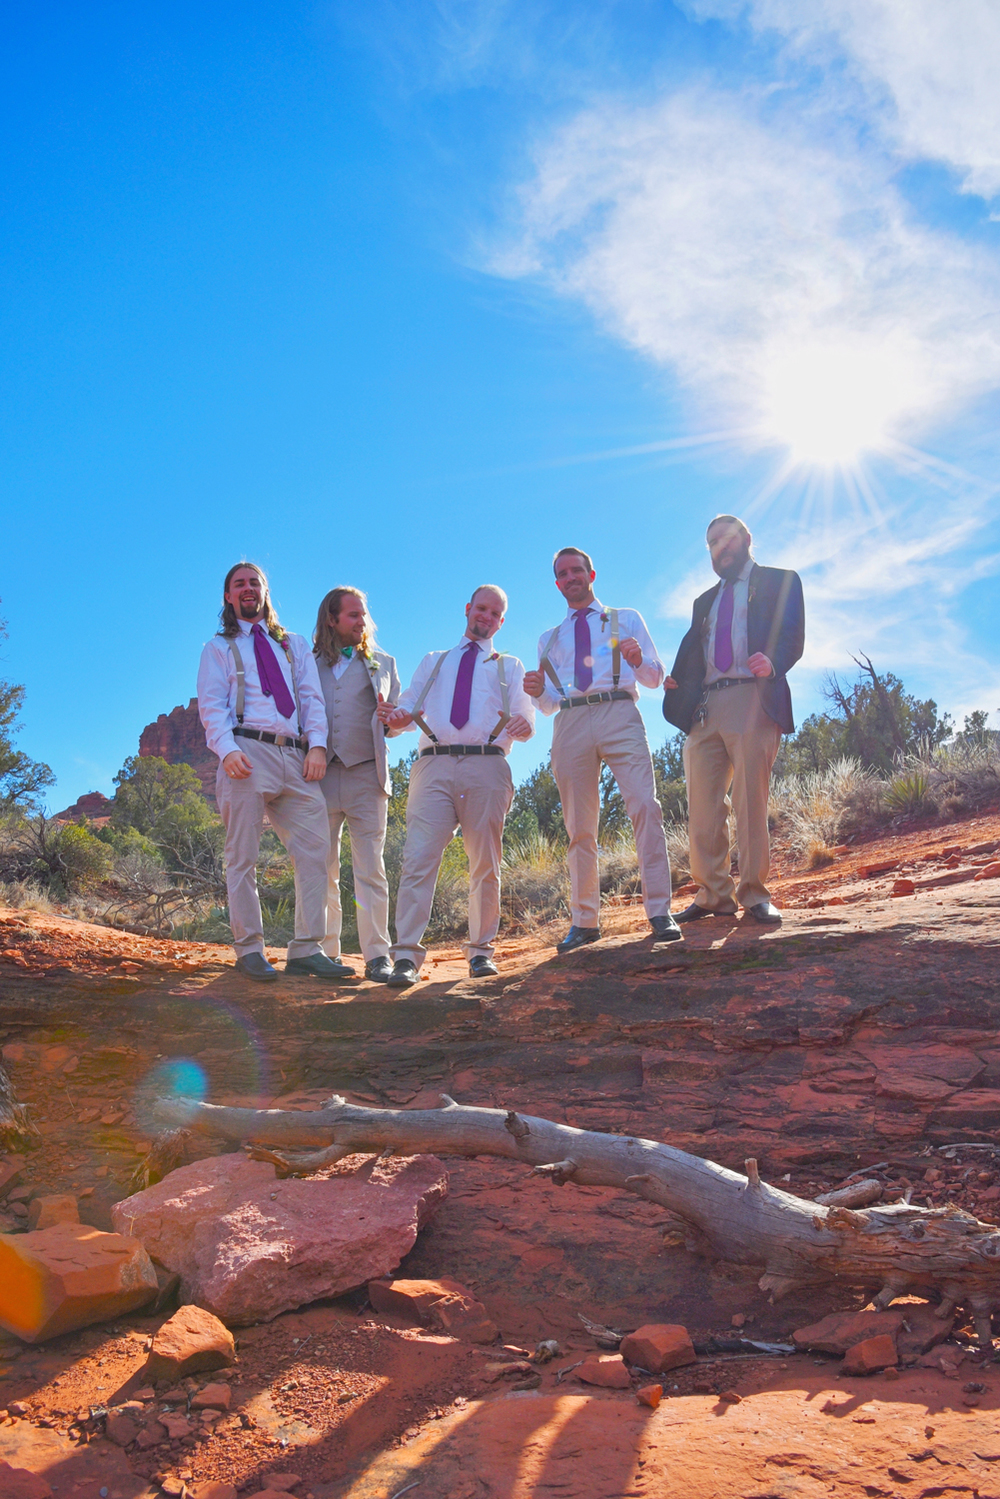 Weddings-Sedona-Wedding-Bell-Rock-Arizona-Desert-Groomsmen_Carly-Carpenter.jpg